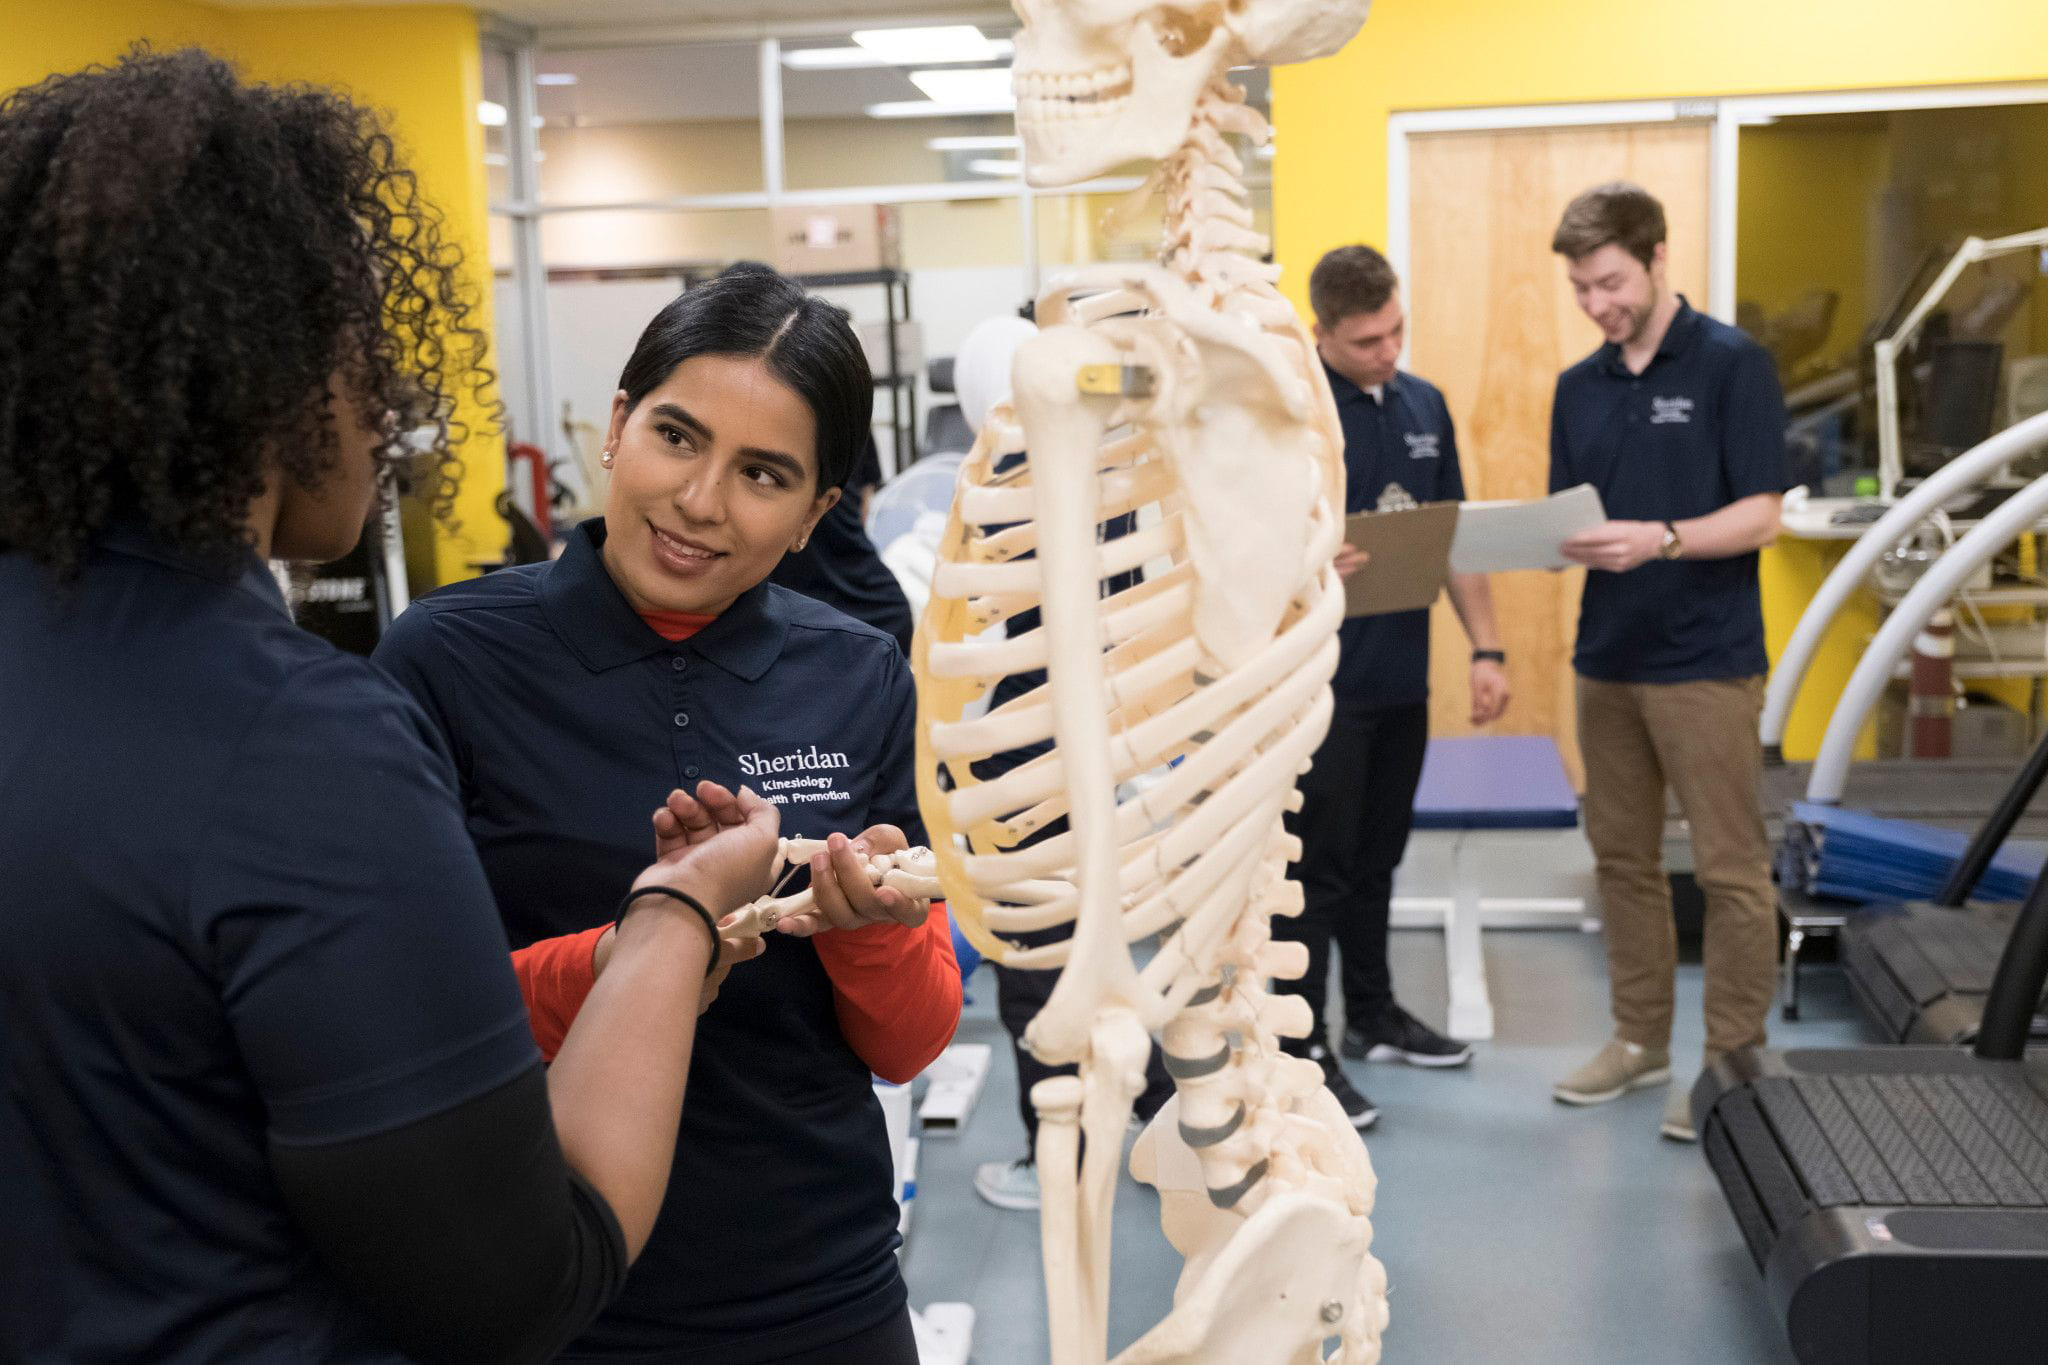 Kinesiology students speaking next to a skeleton in a classroom